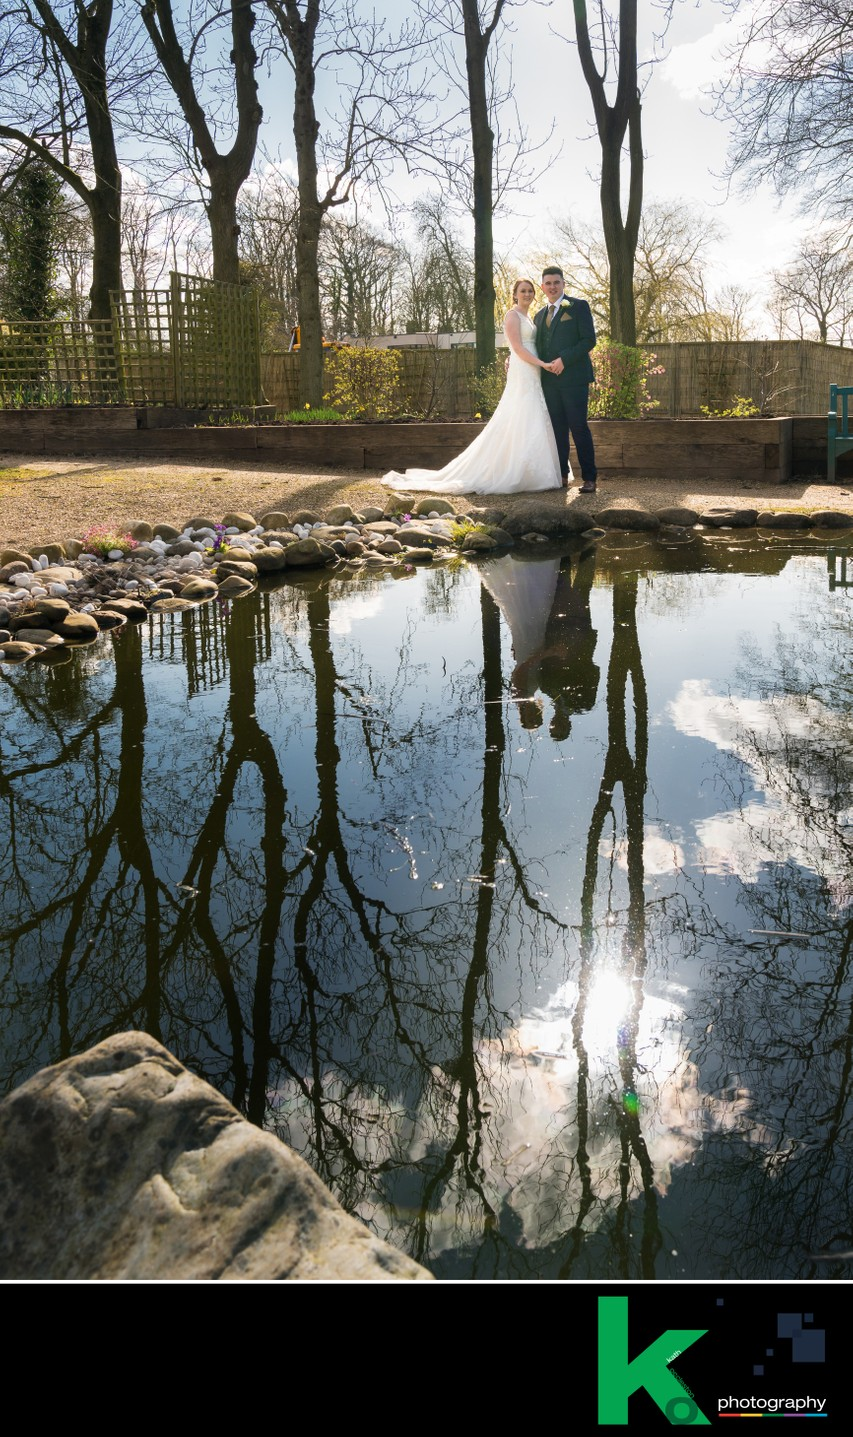 Ribby Hall gardens wedding photos